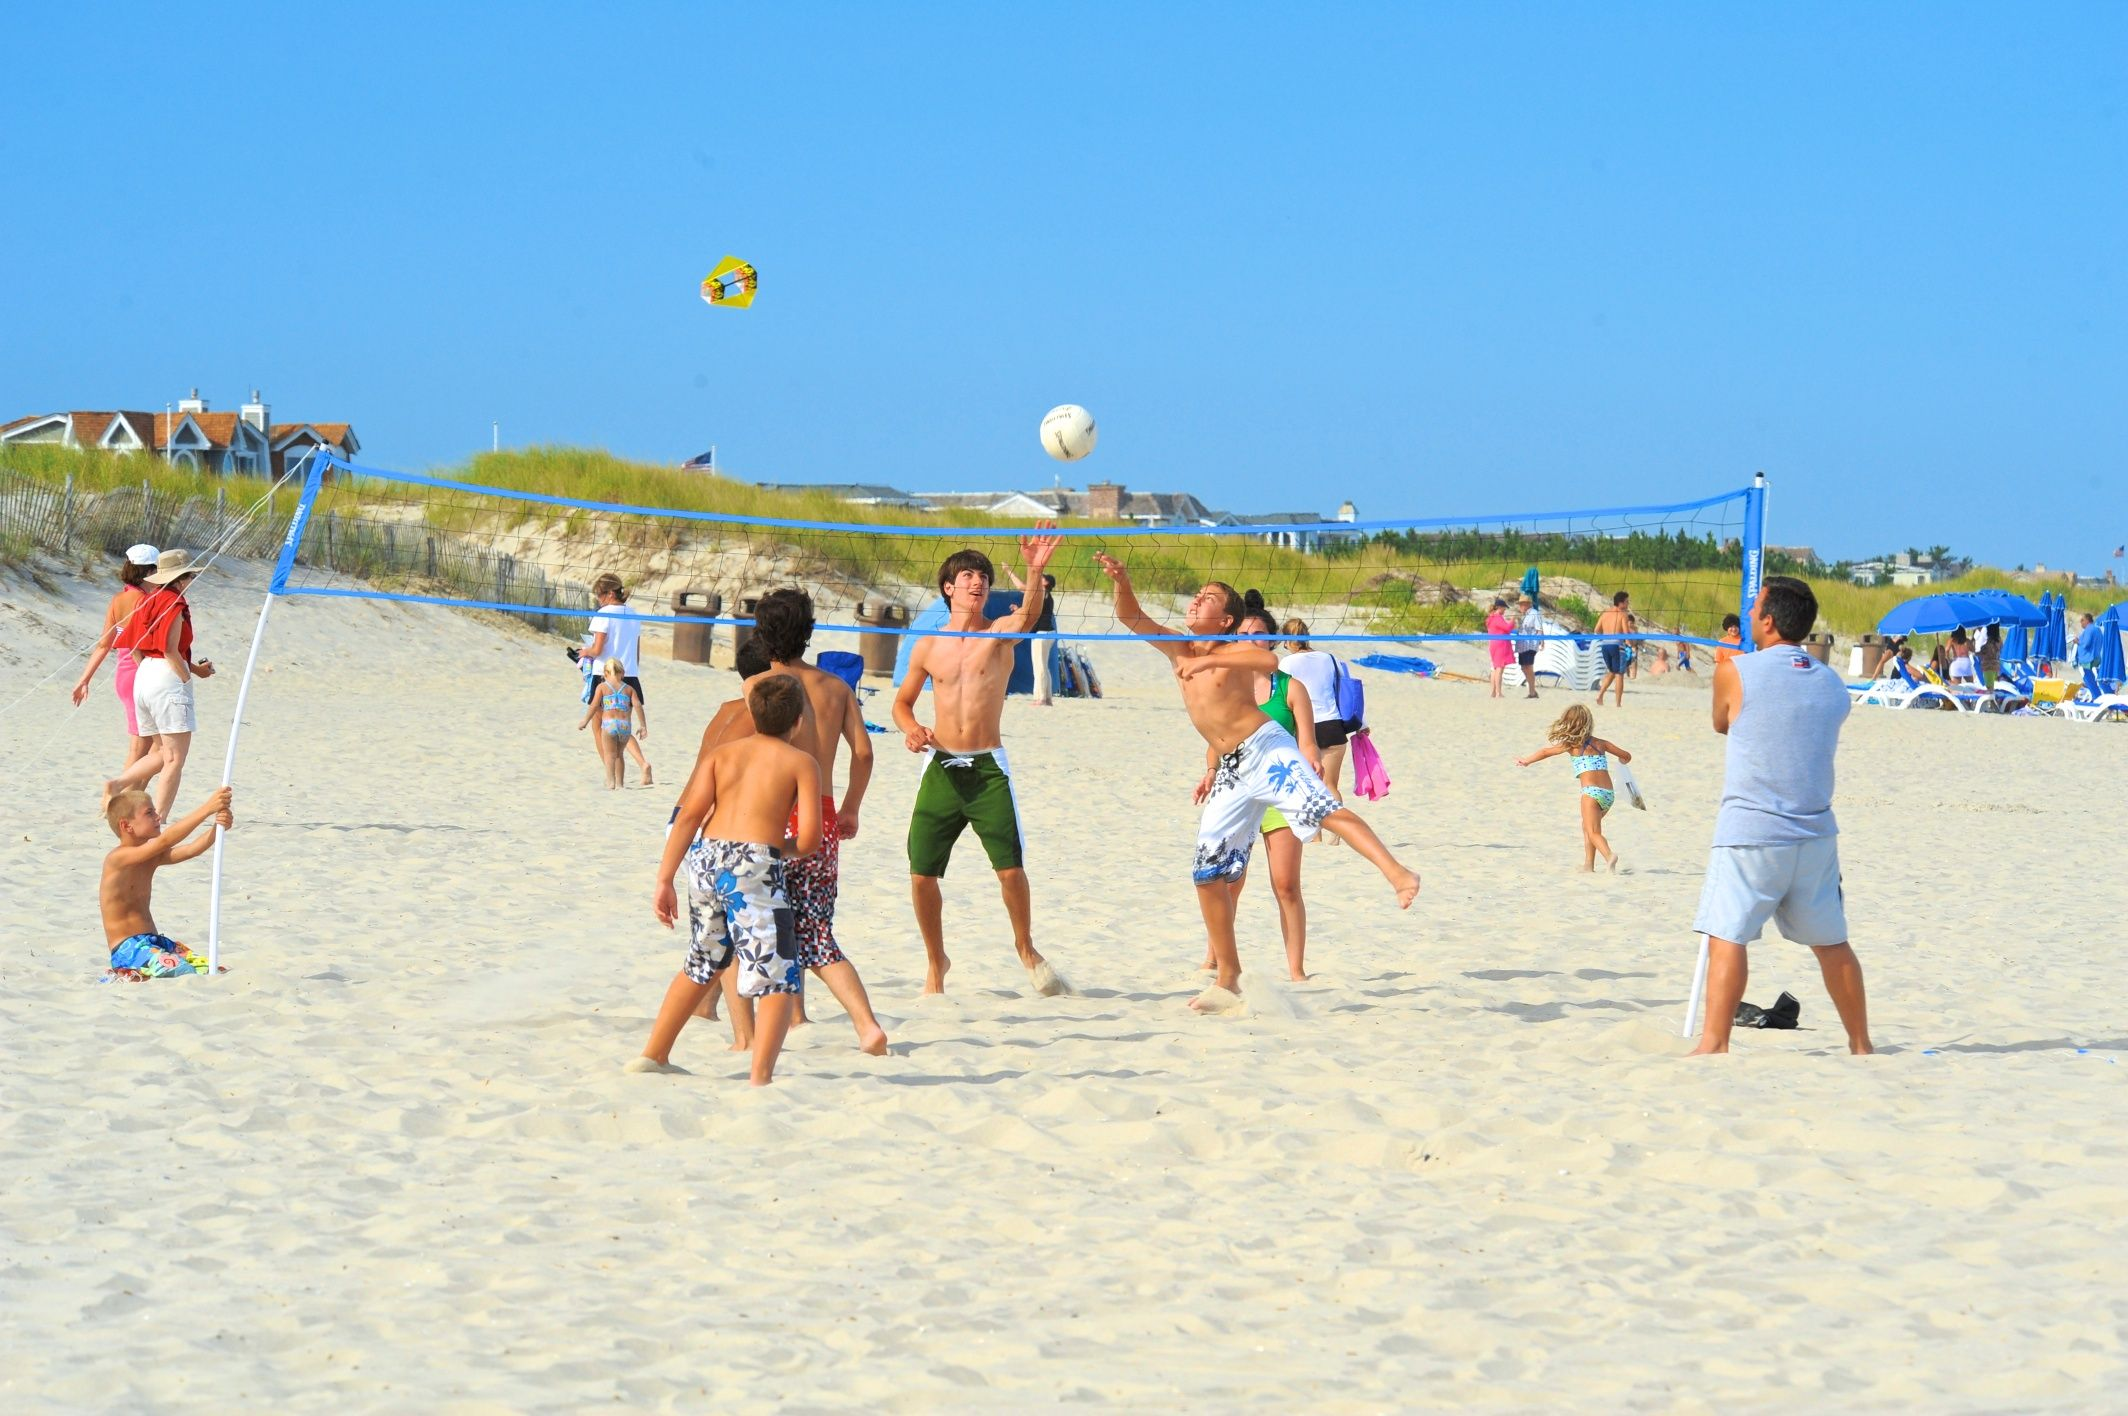 Beach Volleyball Is Always Fun In Summer Cape May Point Ocean City Jersey Cape Cape May County New Jersey Cape May County Cape May Cape May Point